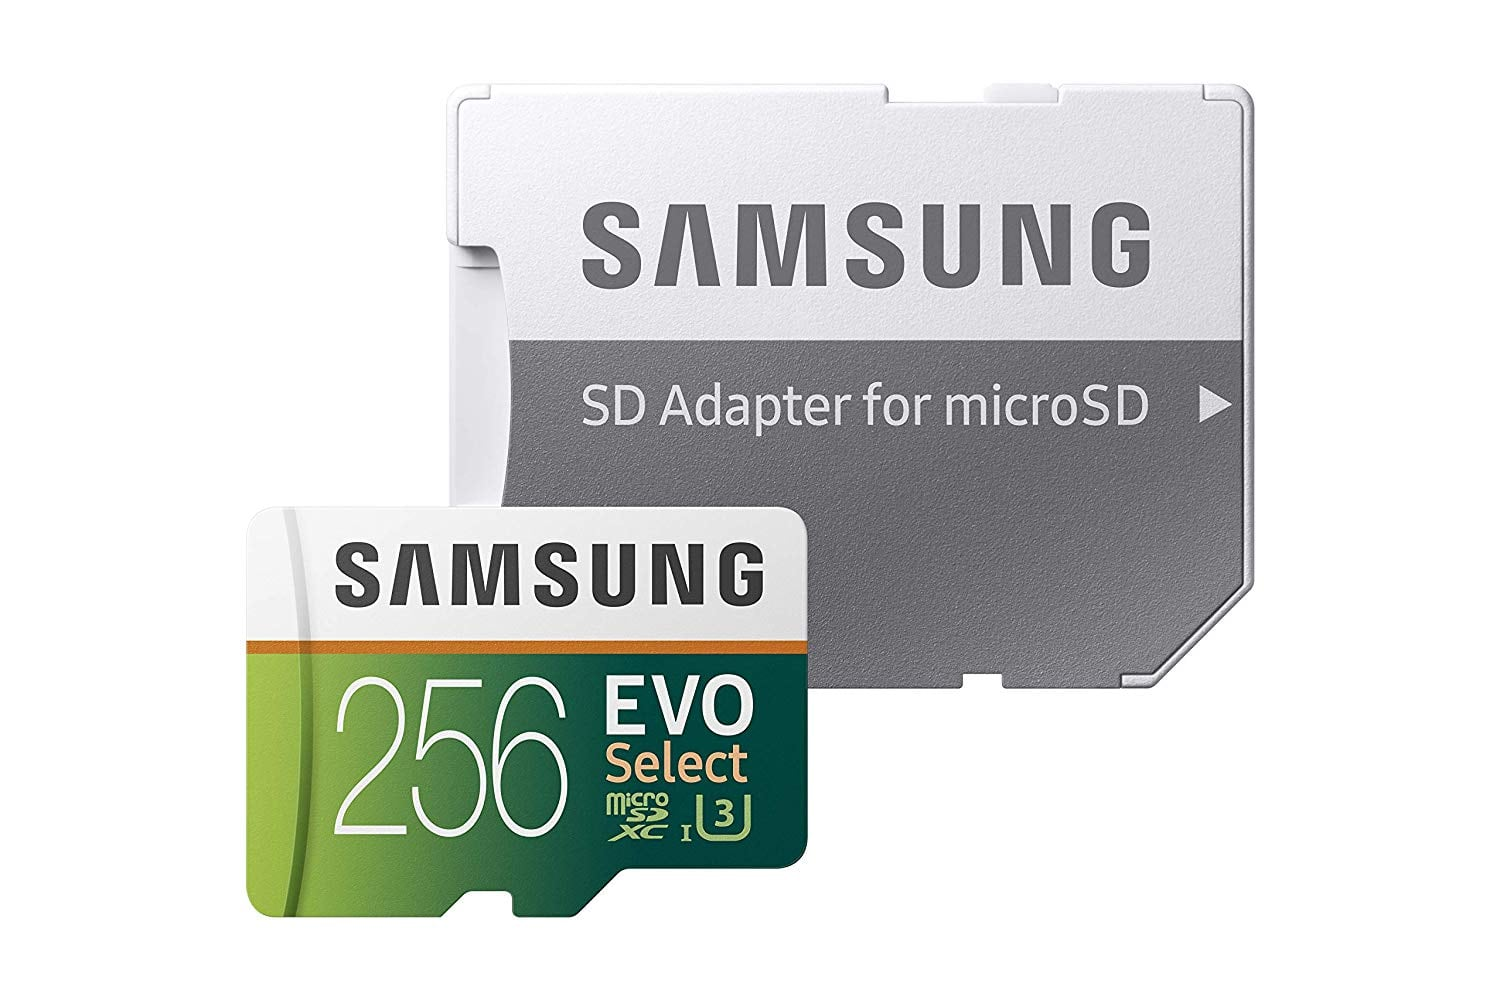 256GB Samsung EVO Select U3 microSD Memory Card w/ Adapter $40 + Free Shipping